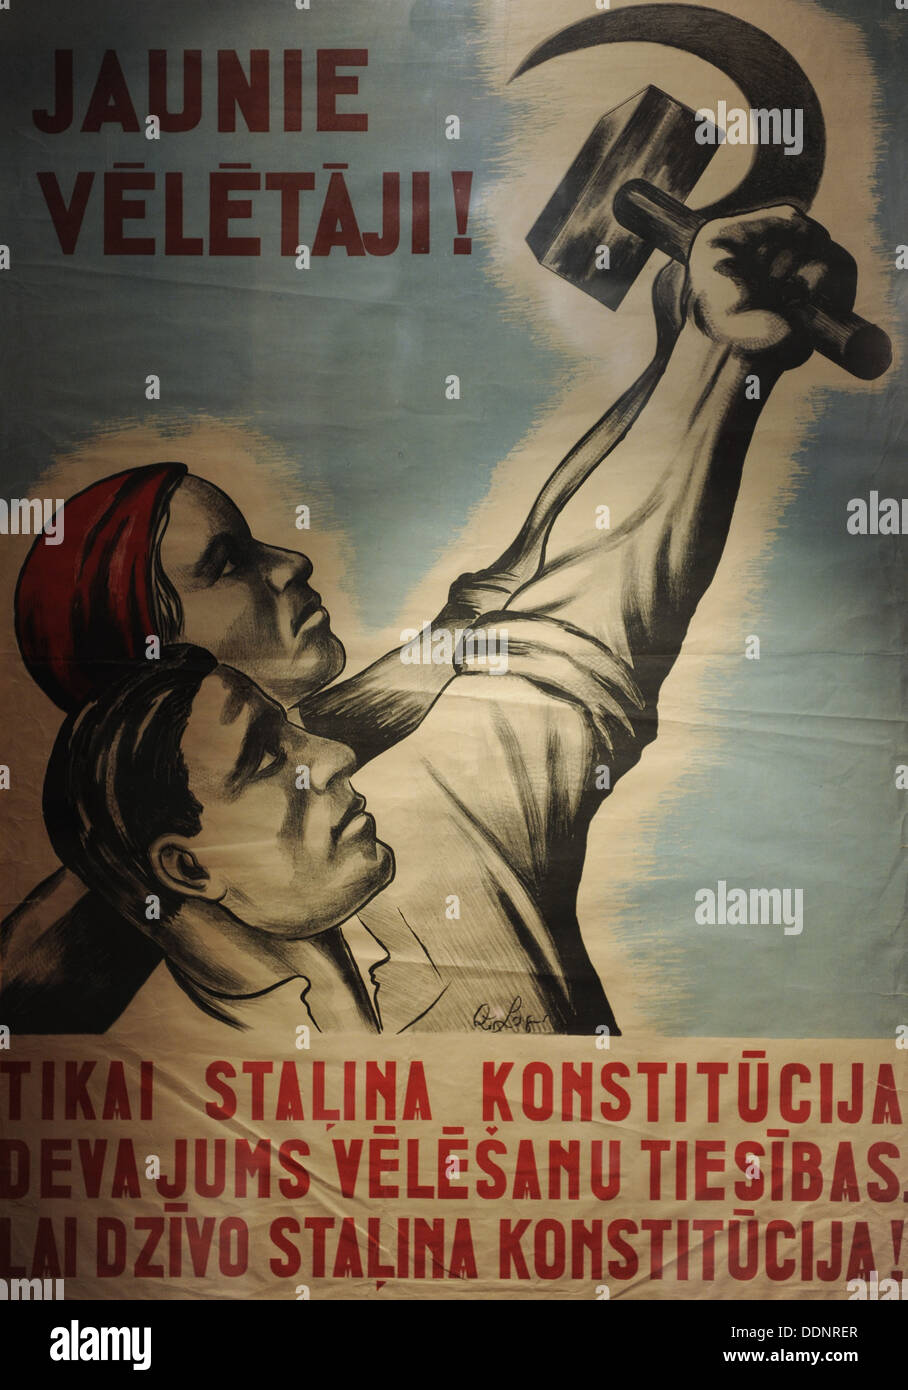 Poster:' New voters!. Long live Stalin's Constitution!'. Second Soviet Occupation 1944-1991. Occupation Museum of Latvia. Riga. - Stock Image